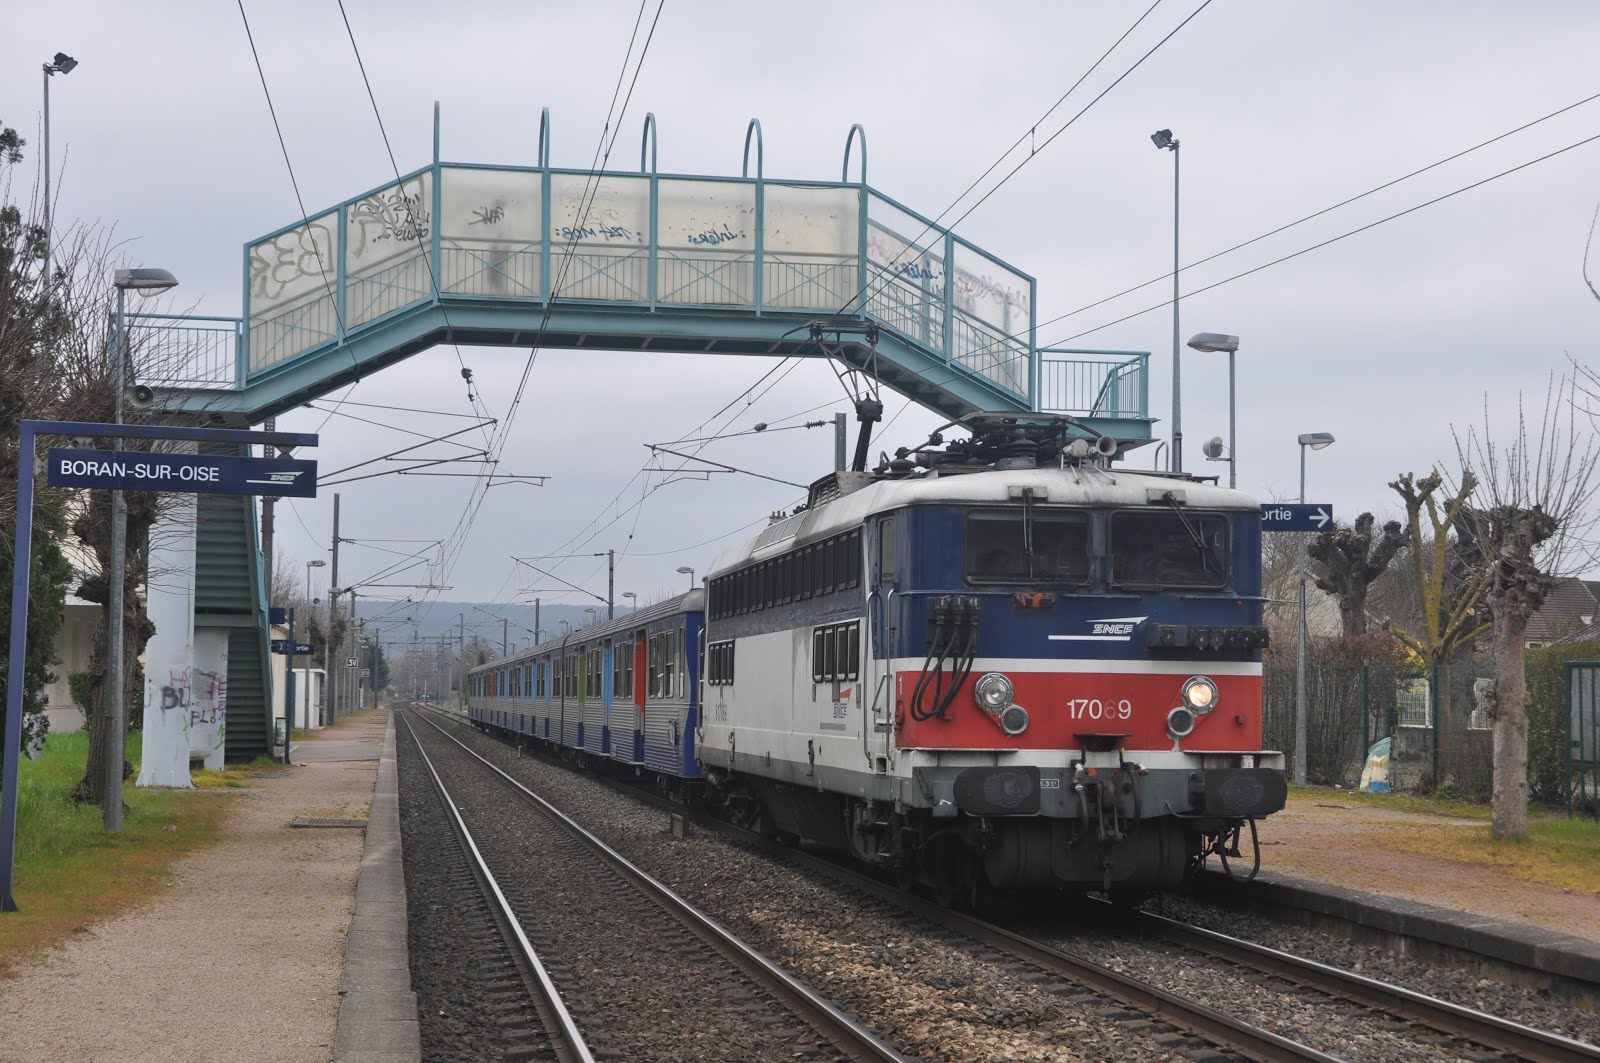 amiens abbeville sncf